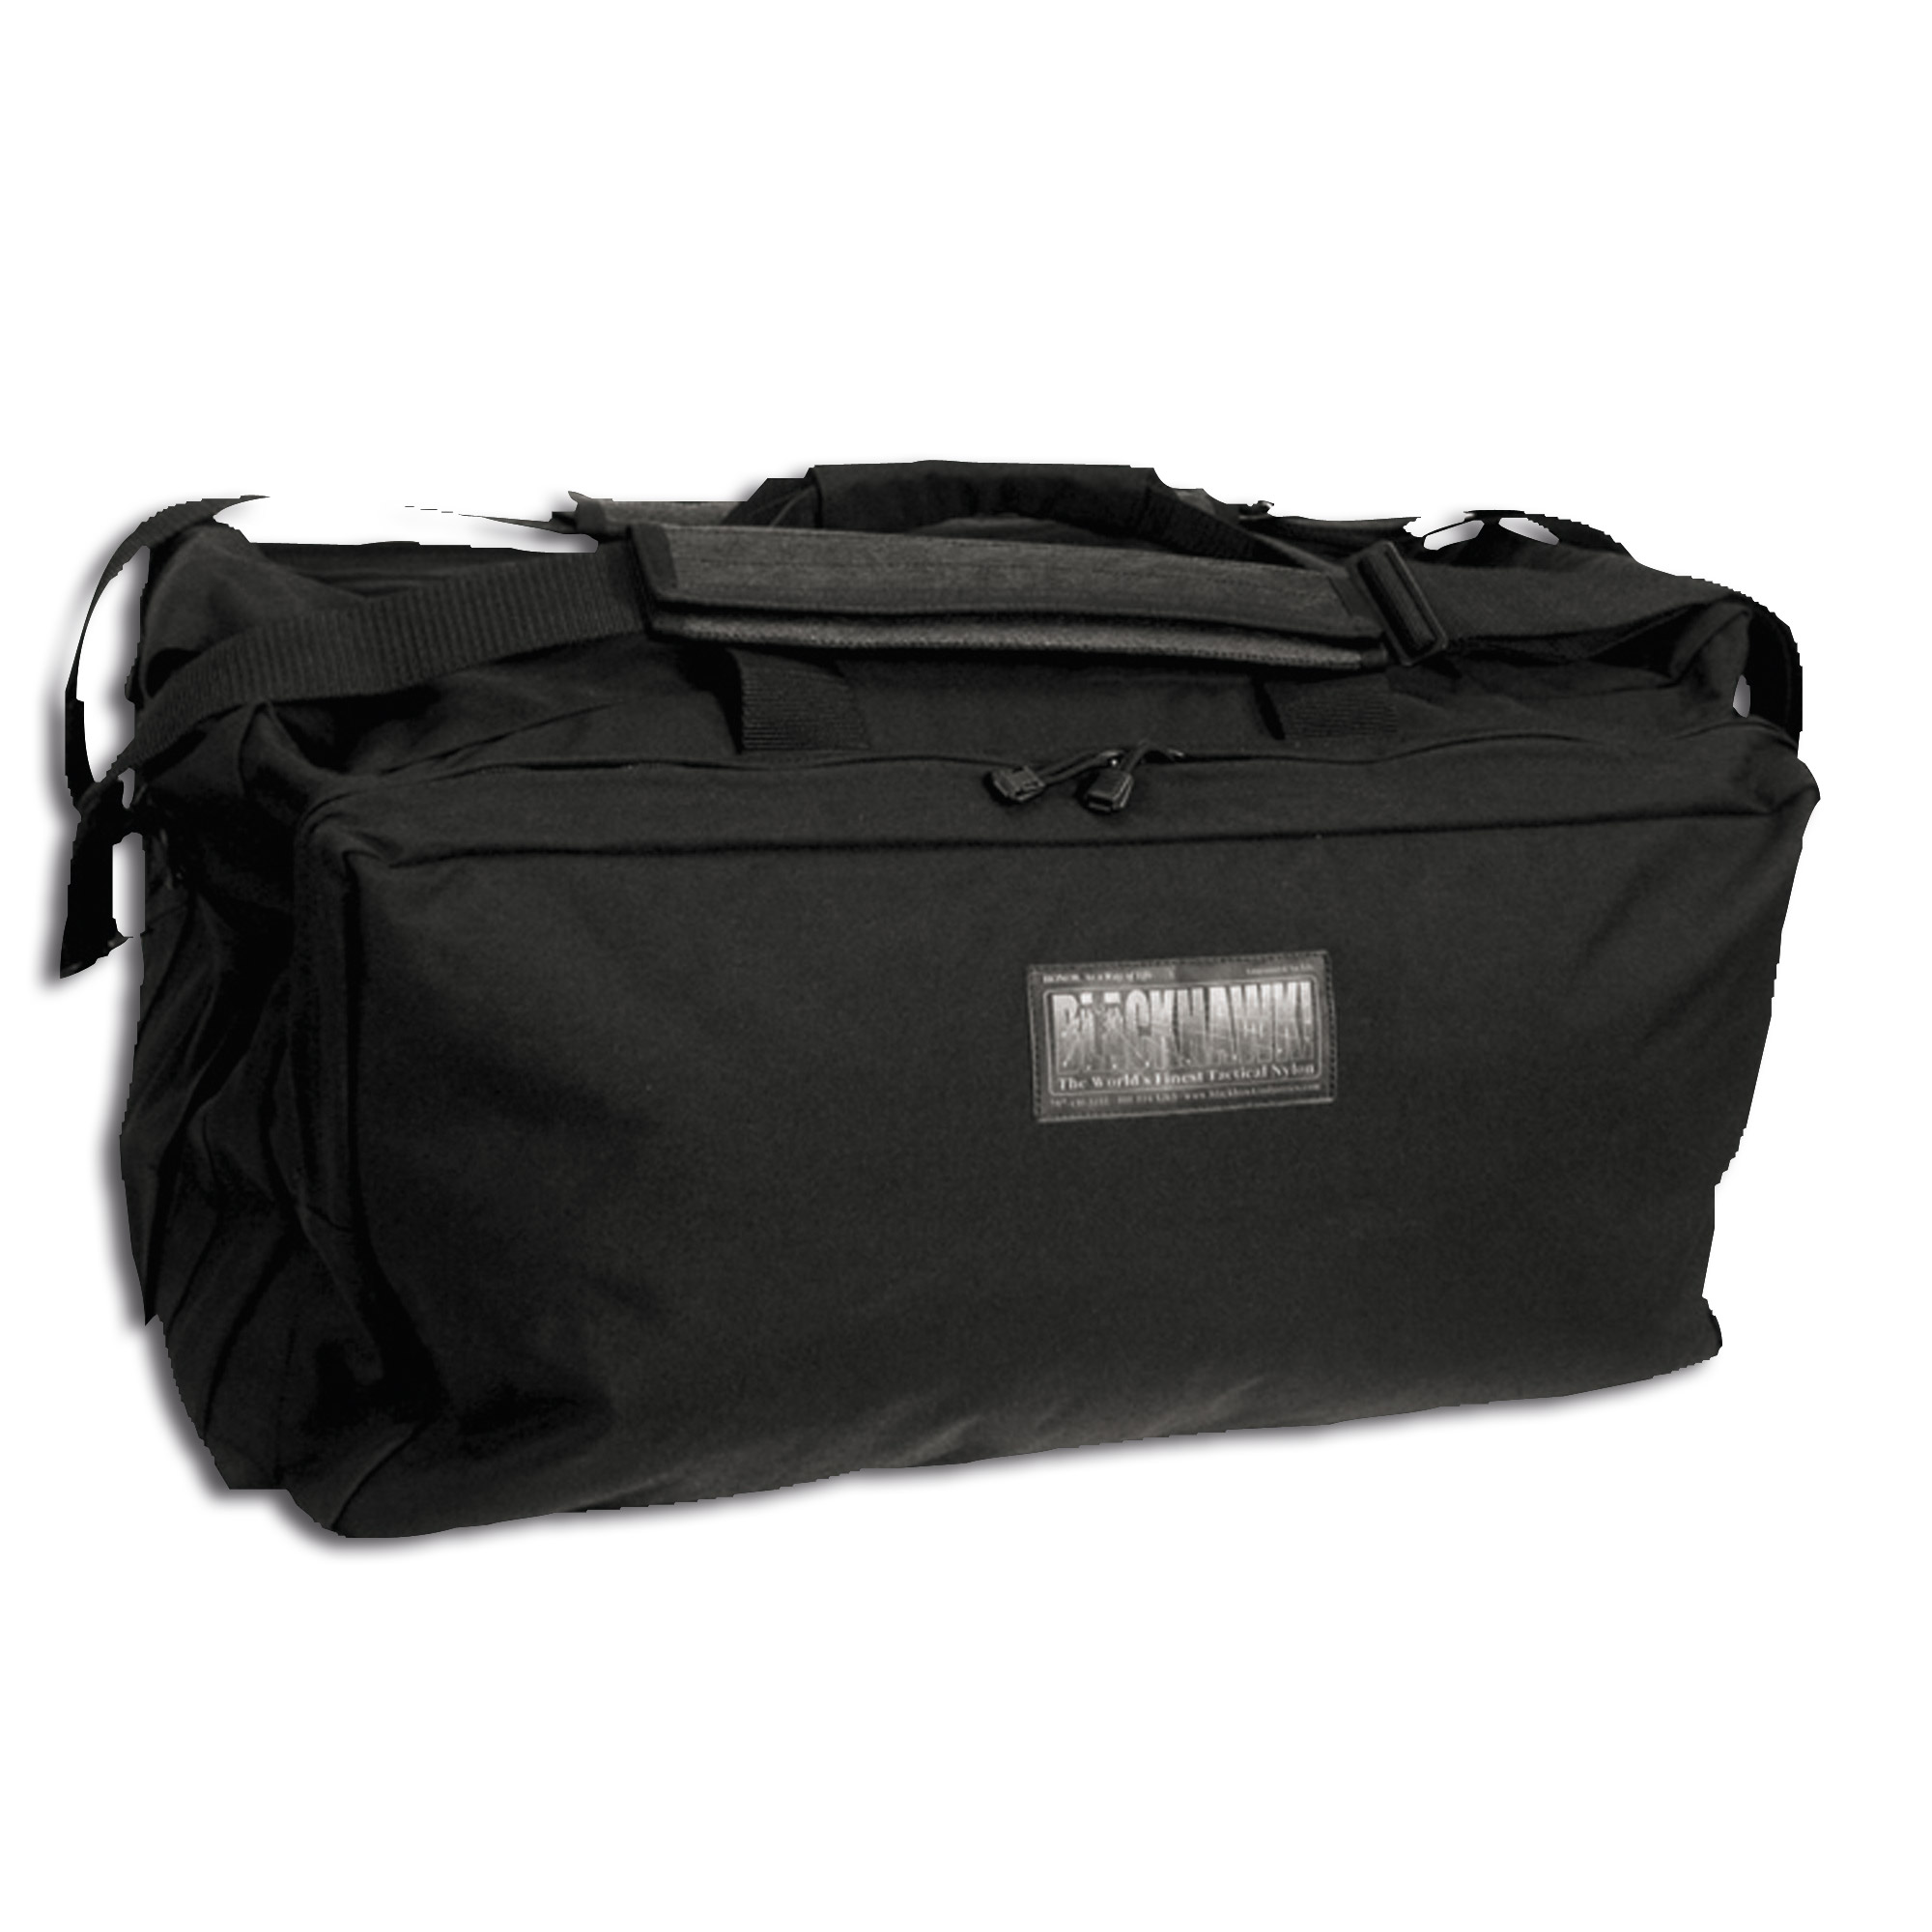 Blackhawk Mobile Operation Bag Large black